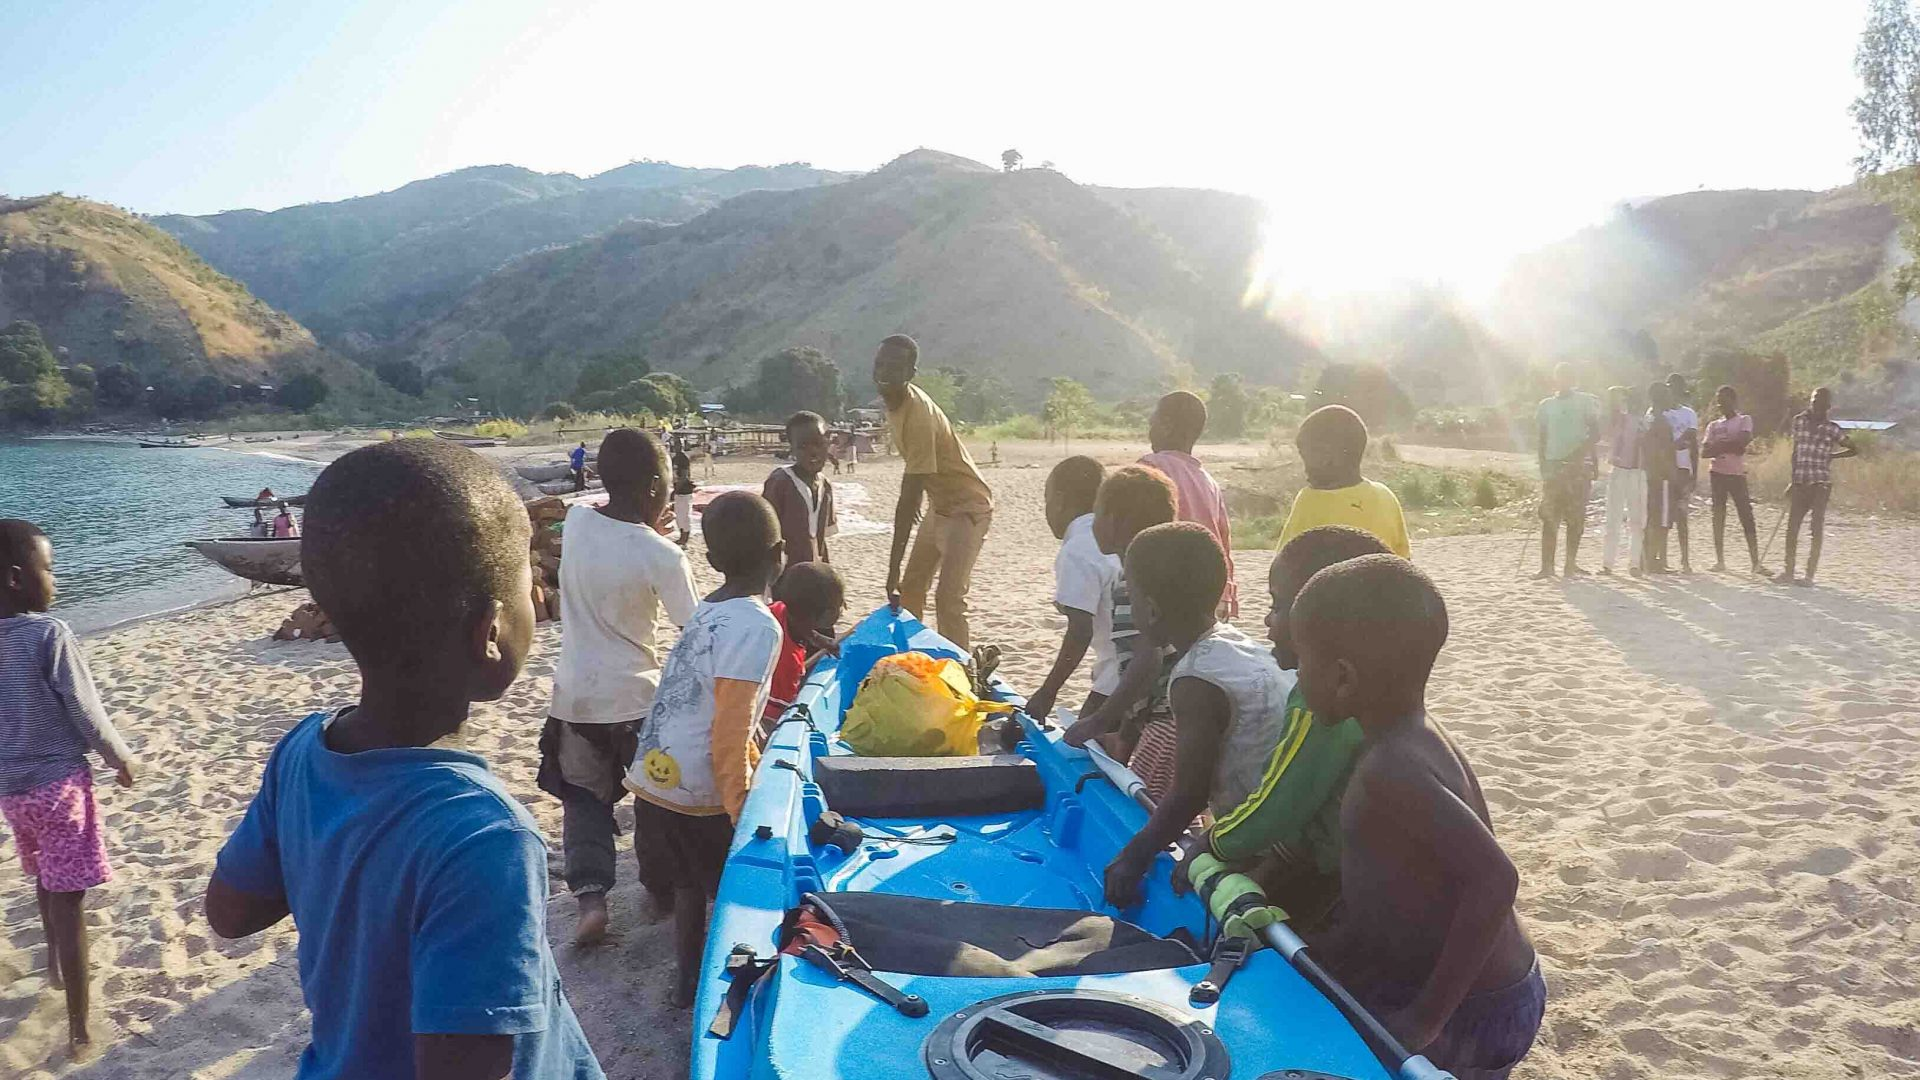 Near the end of Mario Rigby's expedition in a village the kids helped him move his kayak.